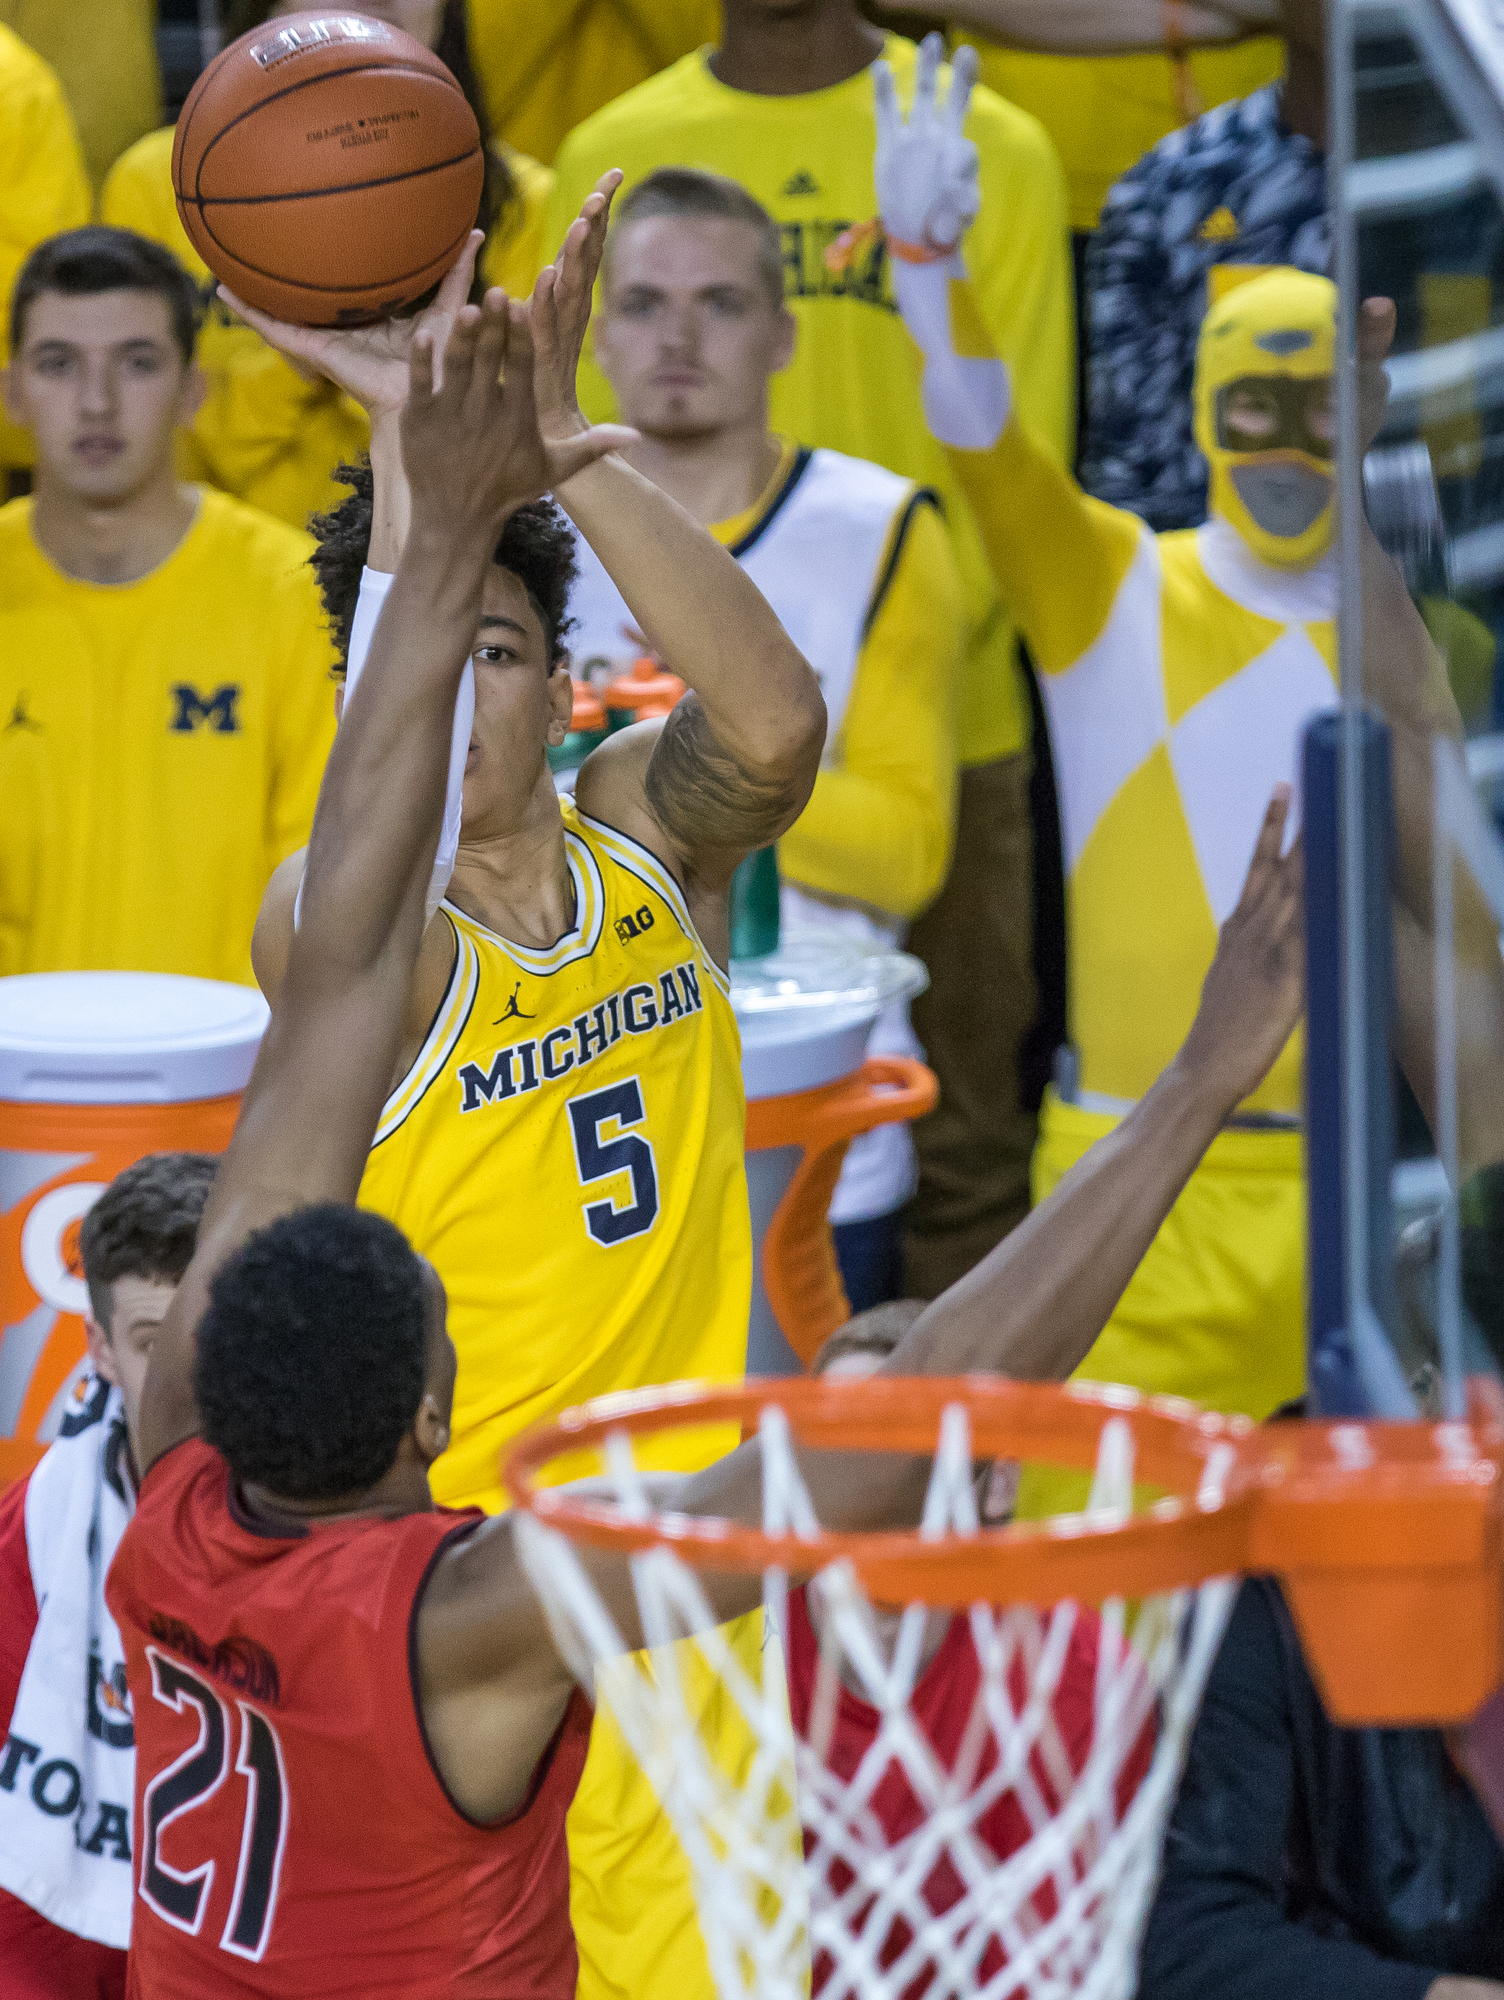 Michigan�s D.J. Wilson (5) shoots a three-point-shot during the first half of play against Maryland at the Crisler Center on Saturday, January 7, 2017. The Michigan Wolverines lost to the Maryland Terrapins 70-77. Matt Weigand | The Ann Arbor News